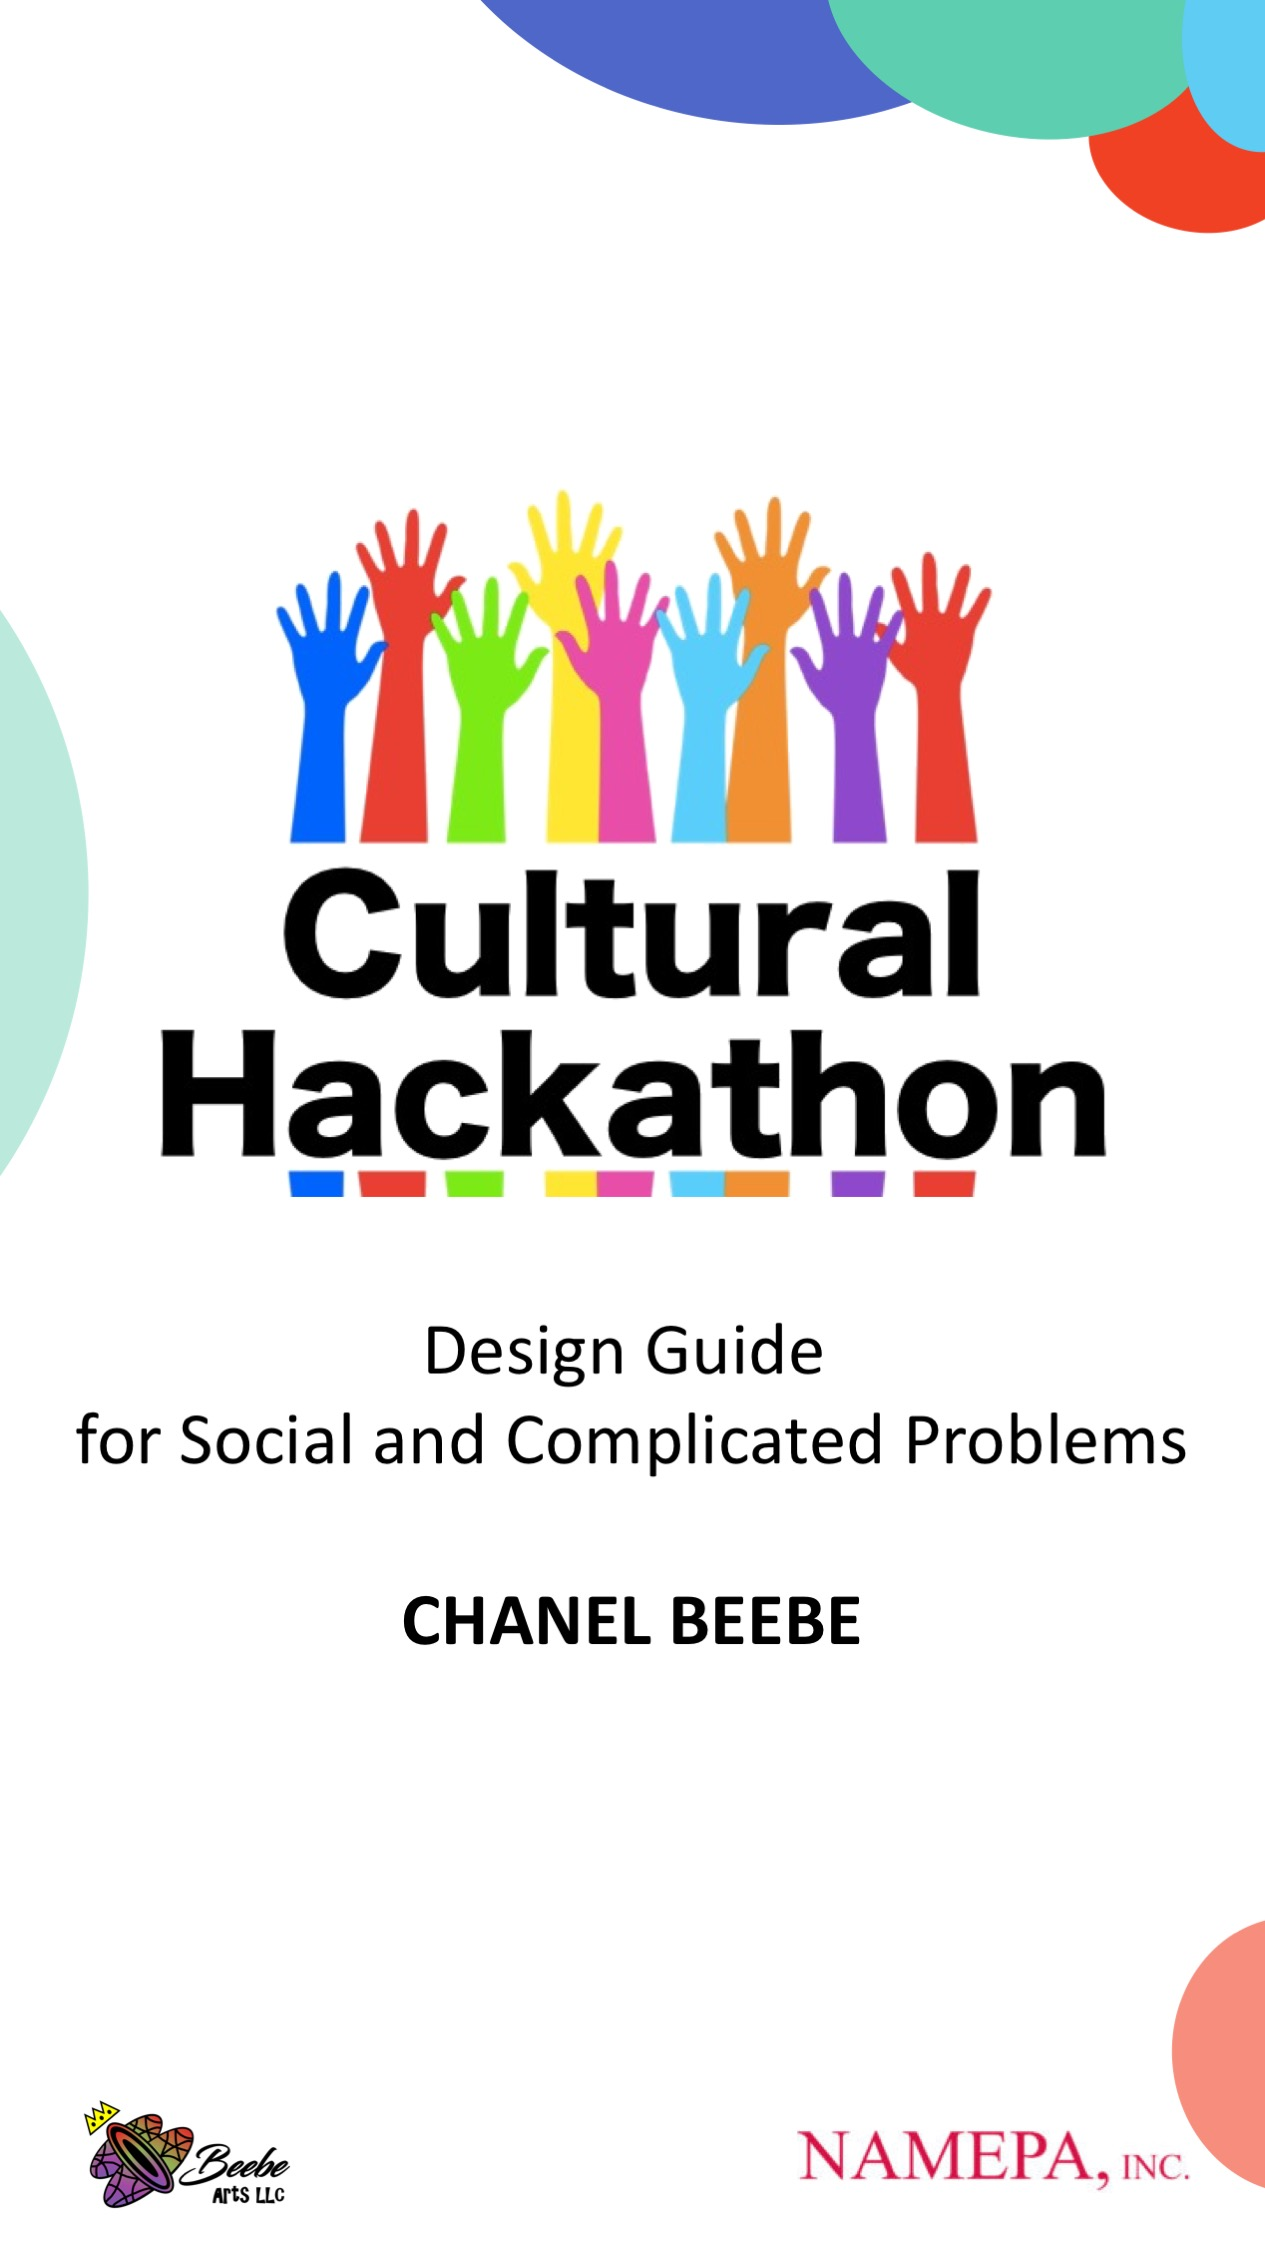 Cultural Hackathon Design Guide - The Cultural Hackathon is an idea which uses the design process to solve social problems in a way that prioritizes the needs and voice of the community partners/stakeholders facing those problems.Cultural Hackathon's evolve in many different forms. This book is intended to allow participants to see a possible big picture of their work and to provide guidance if their particular Cultural Hackathon is moving at a different pace than their projects/problem as dictated by the entity nearest to the stakeholder.